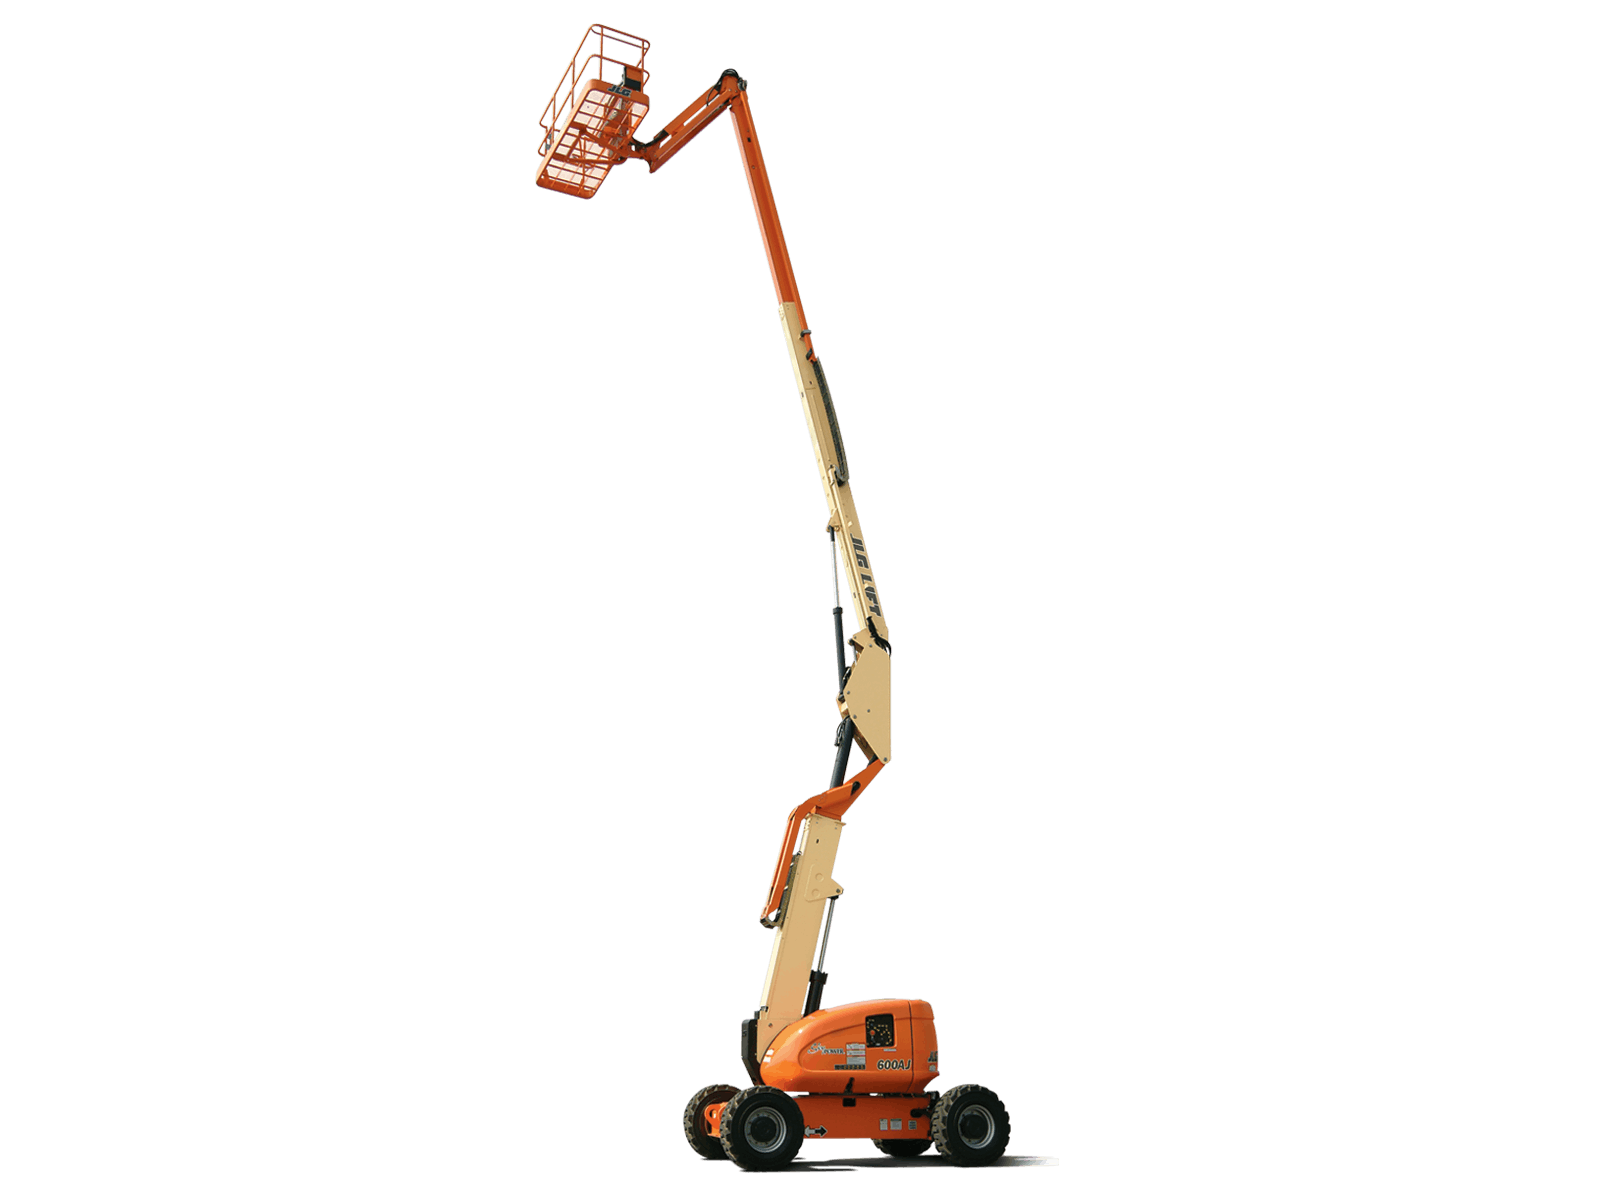 Articulated 60' Boom Lift